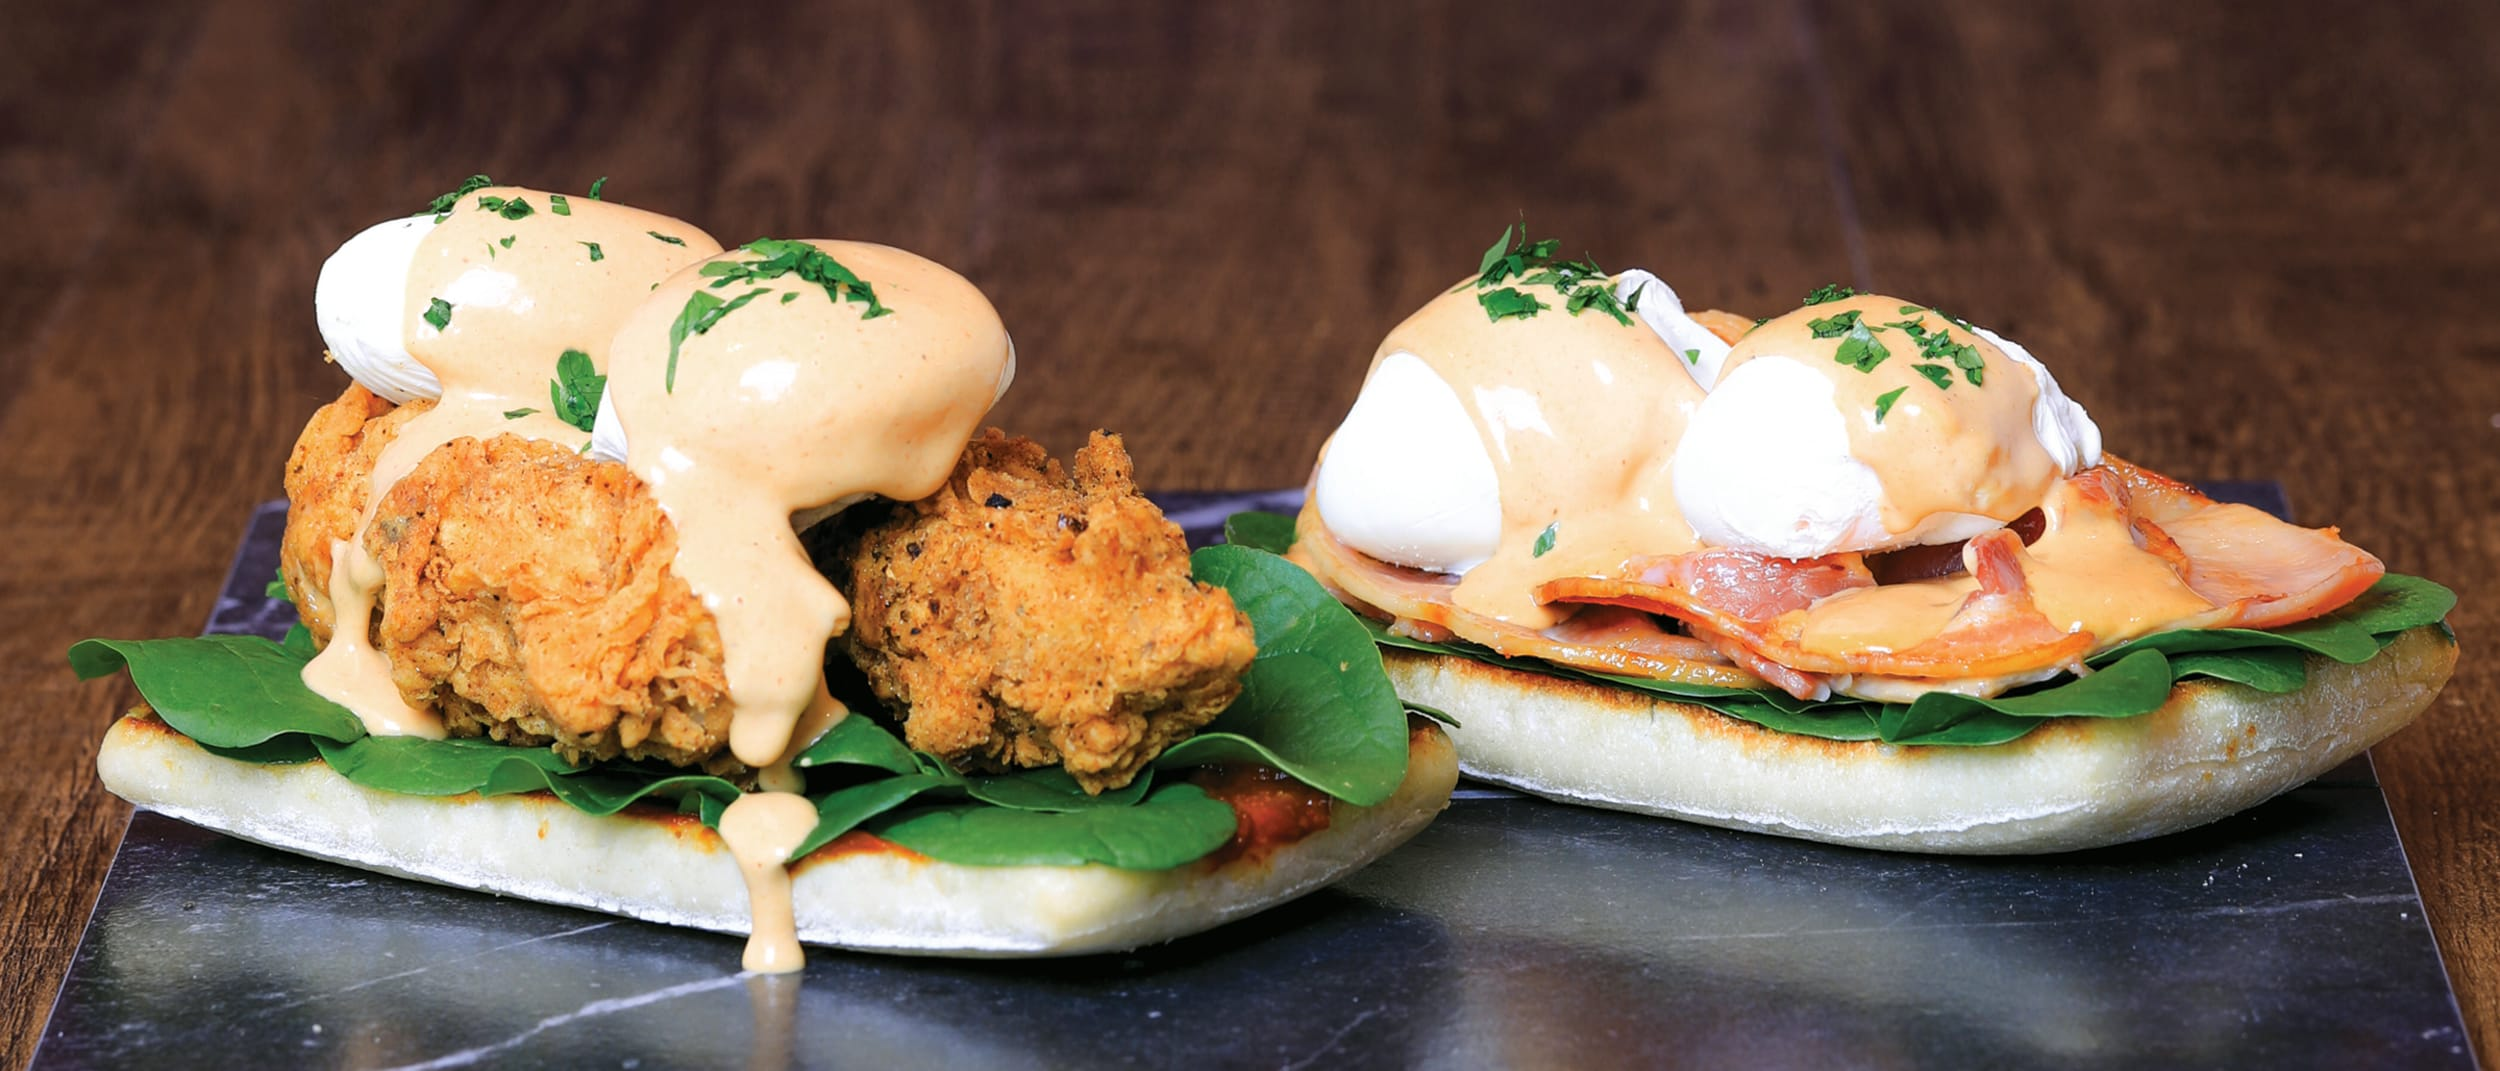 Southern style eggs bene limited time offer*